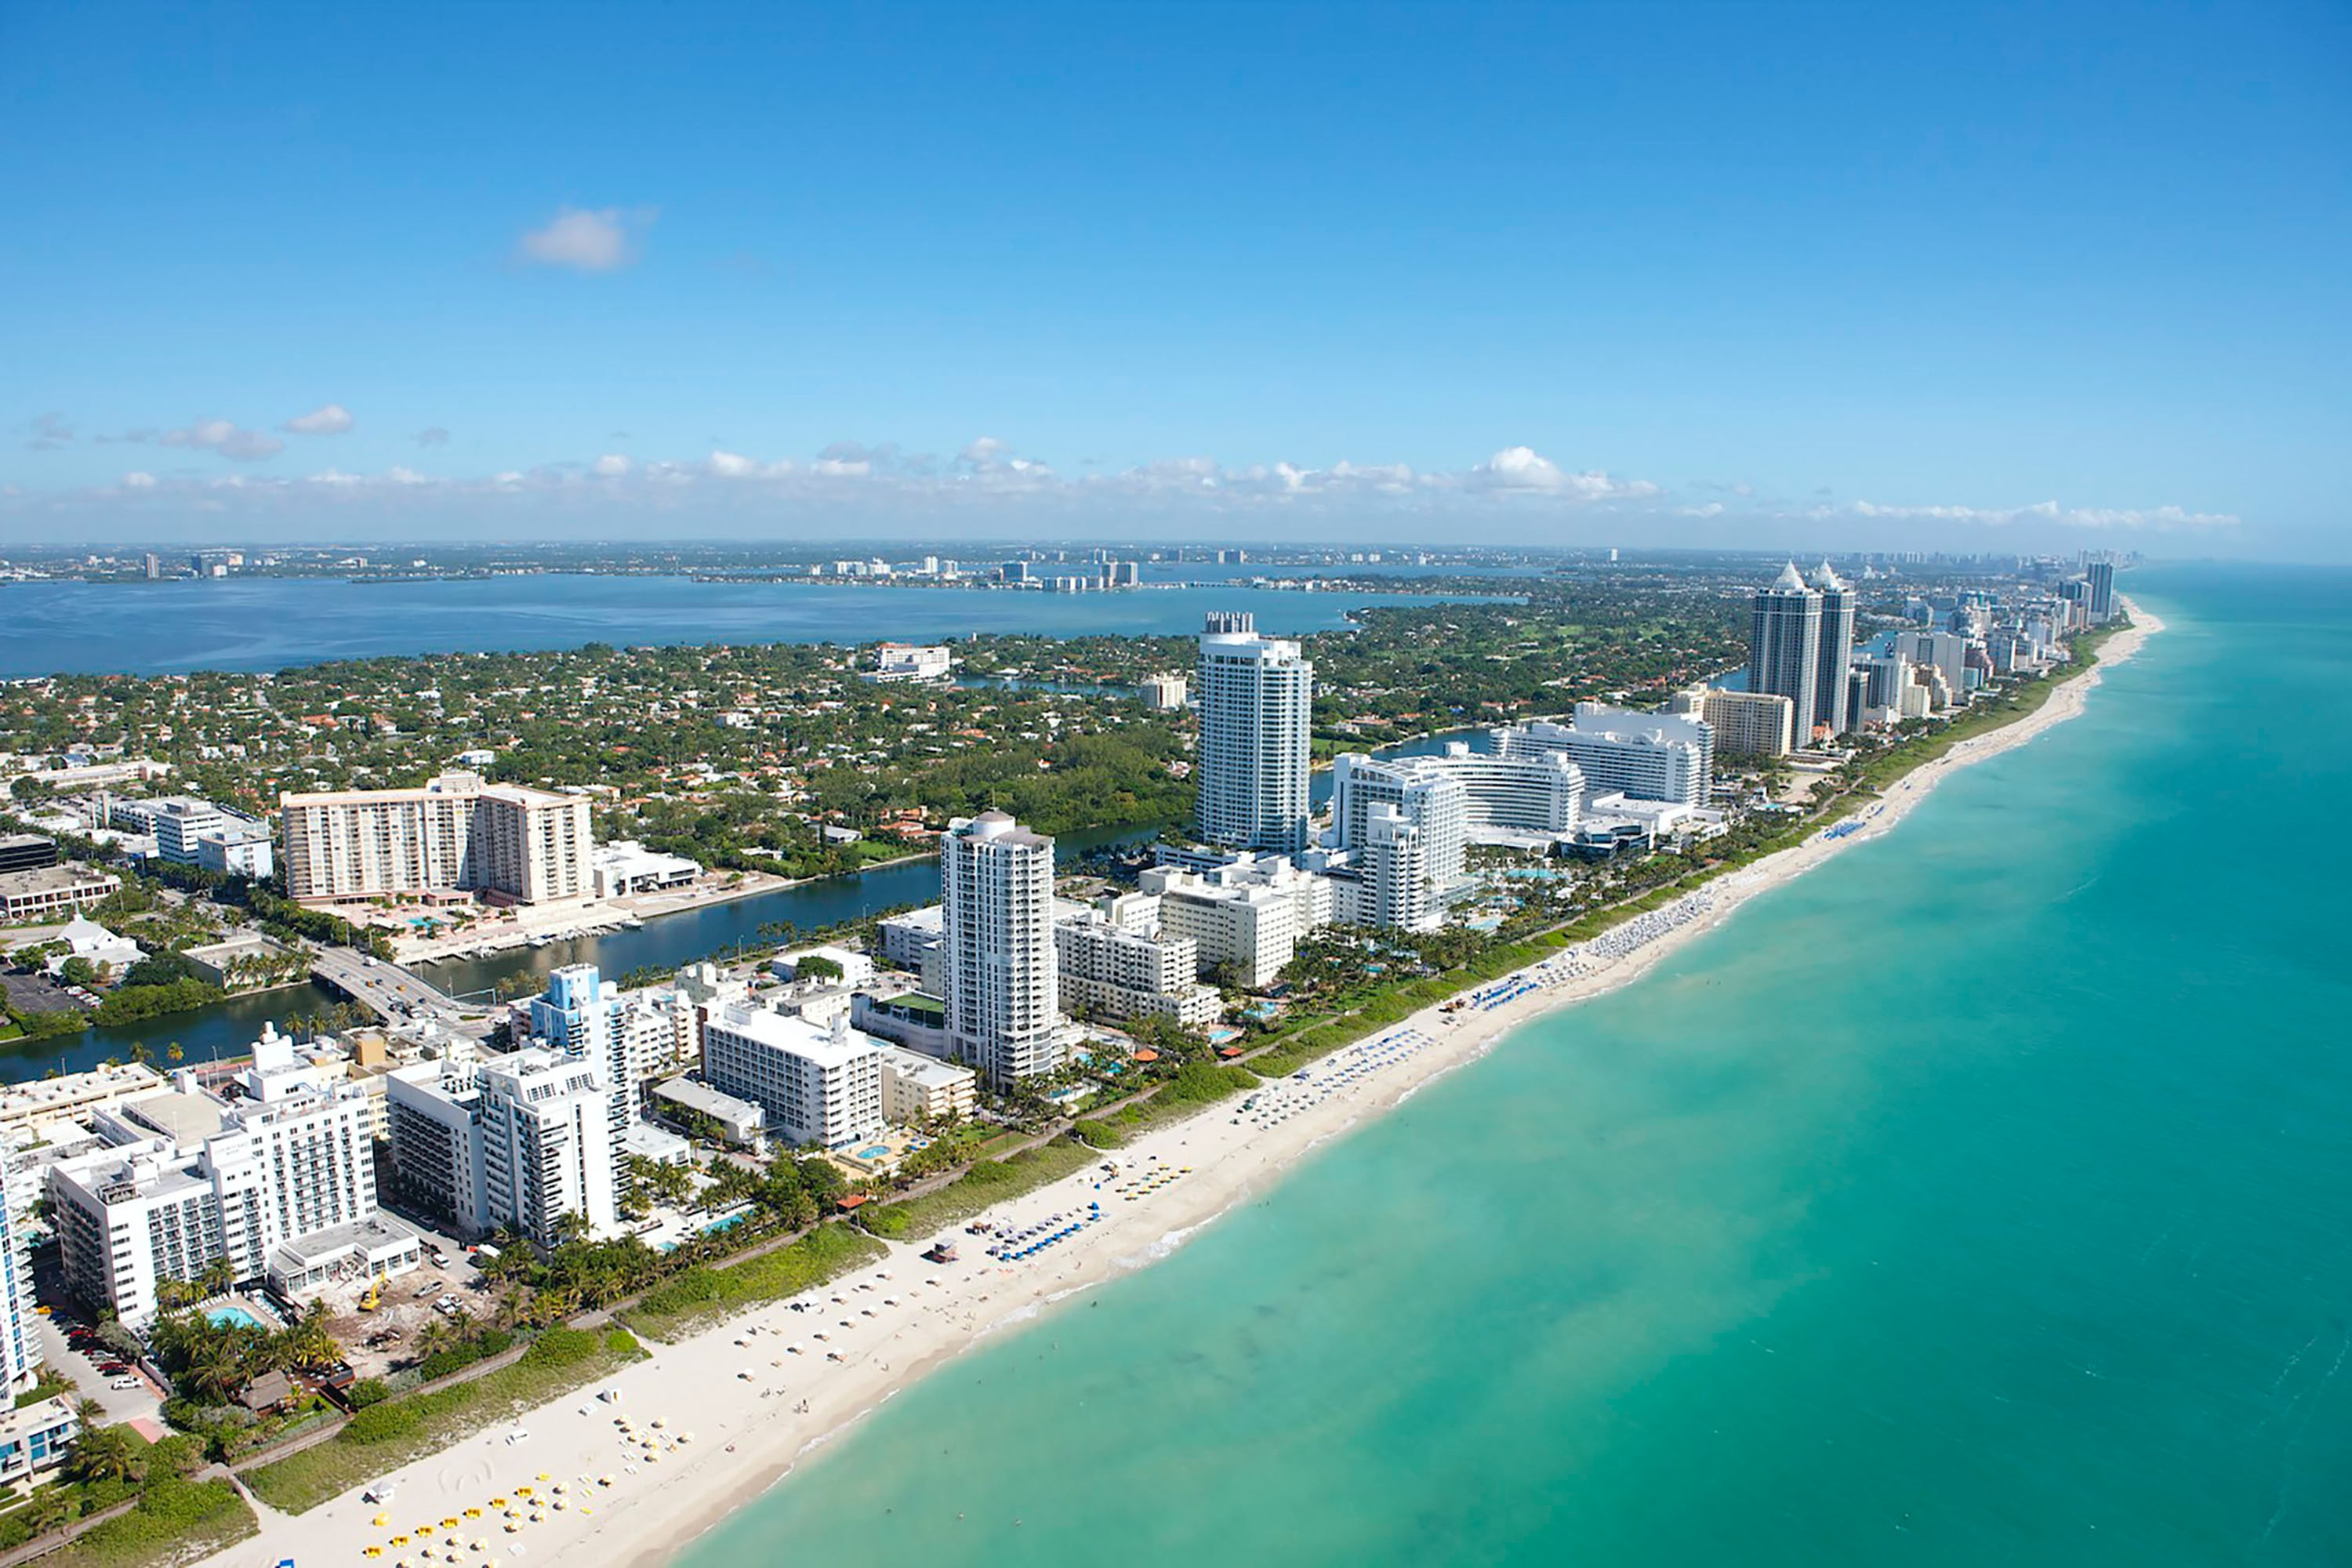 Miami Beach Recognized With Multiple Industry Awards Highlighting its Global Reputation